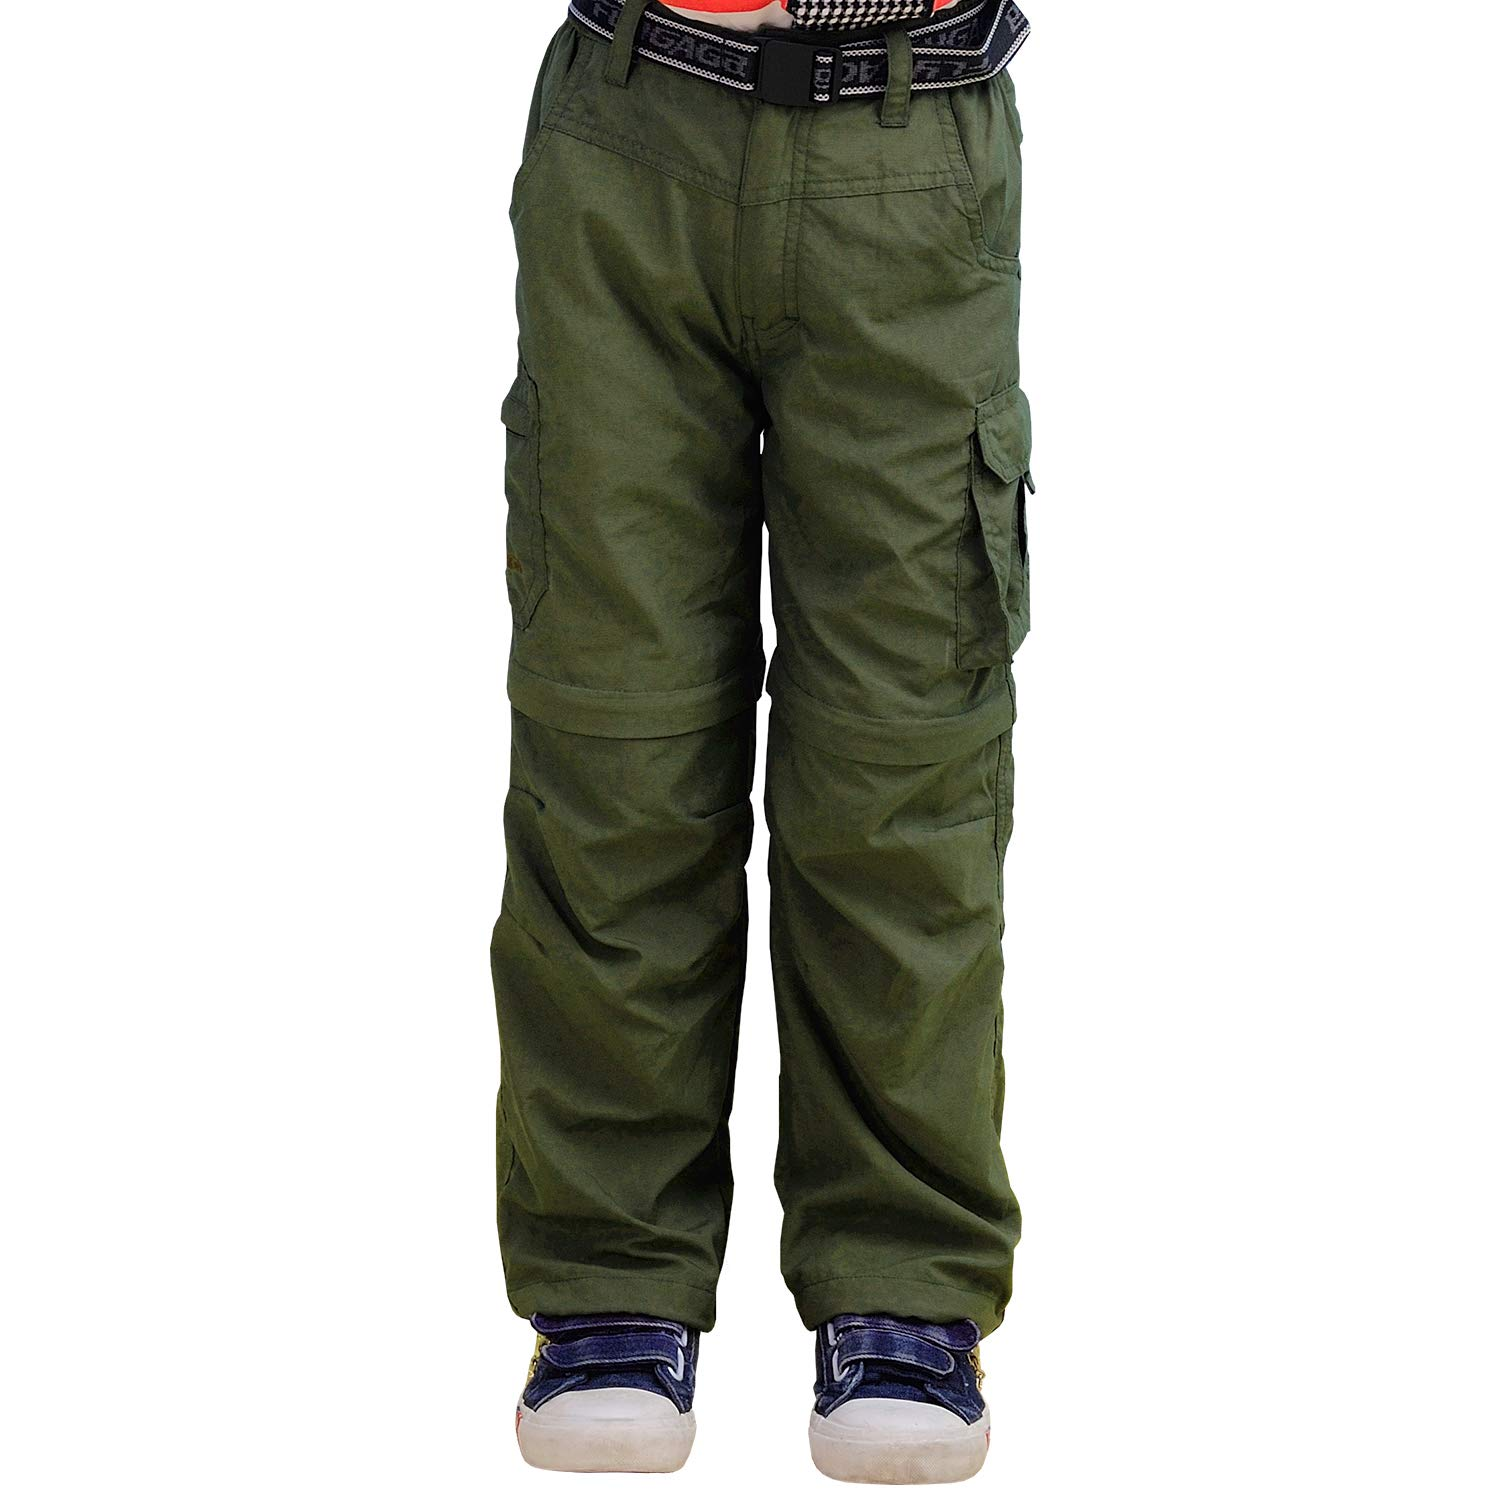 Yutona Boy's Quick Dry Outdoor Convertible Trail Pants Army Green